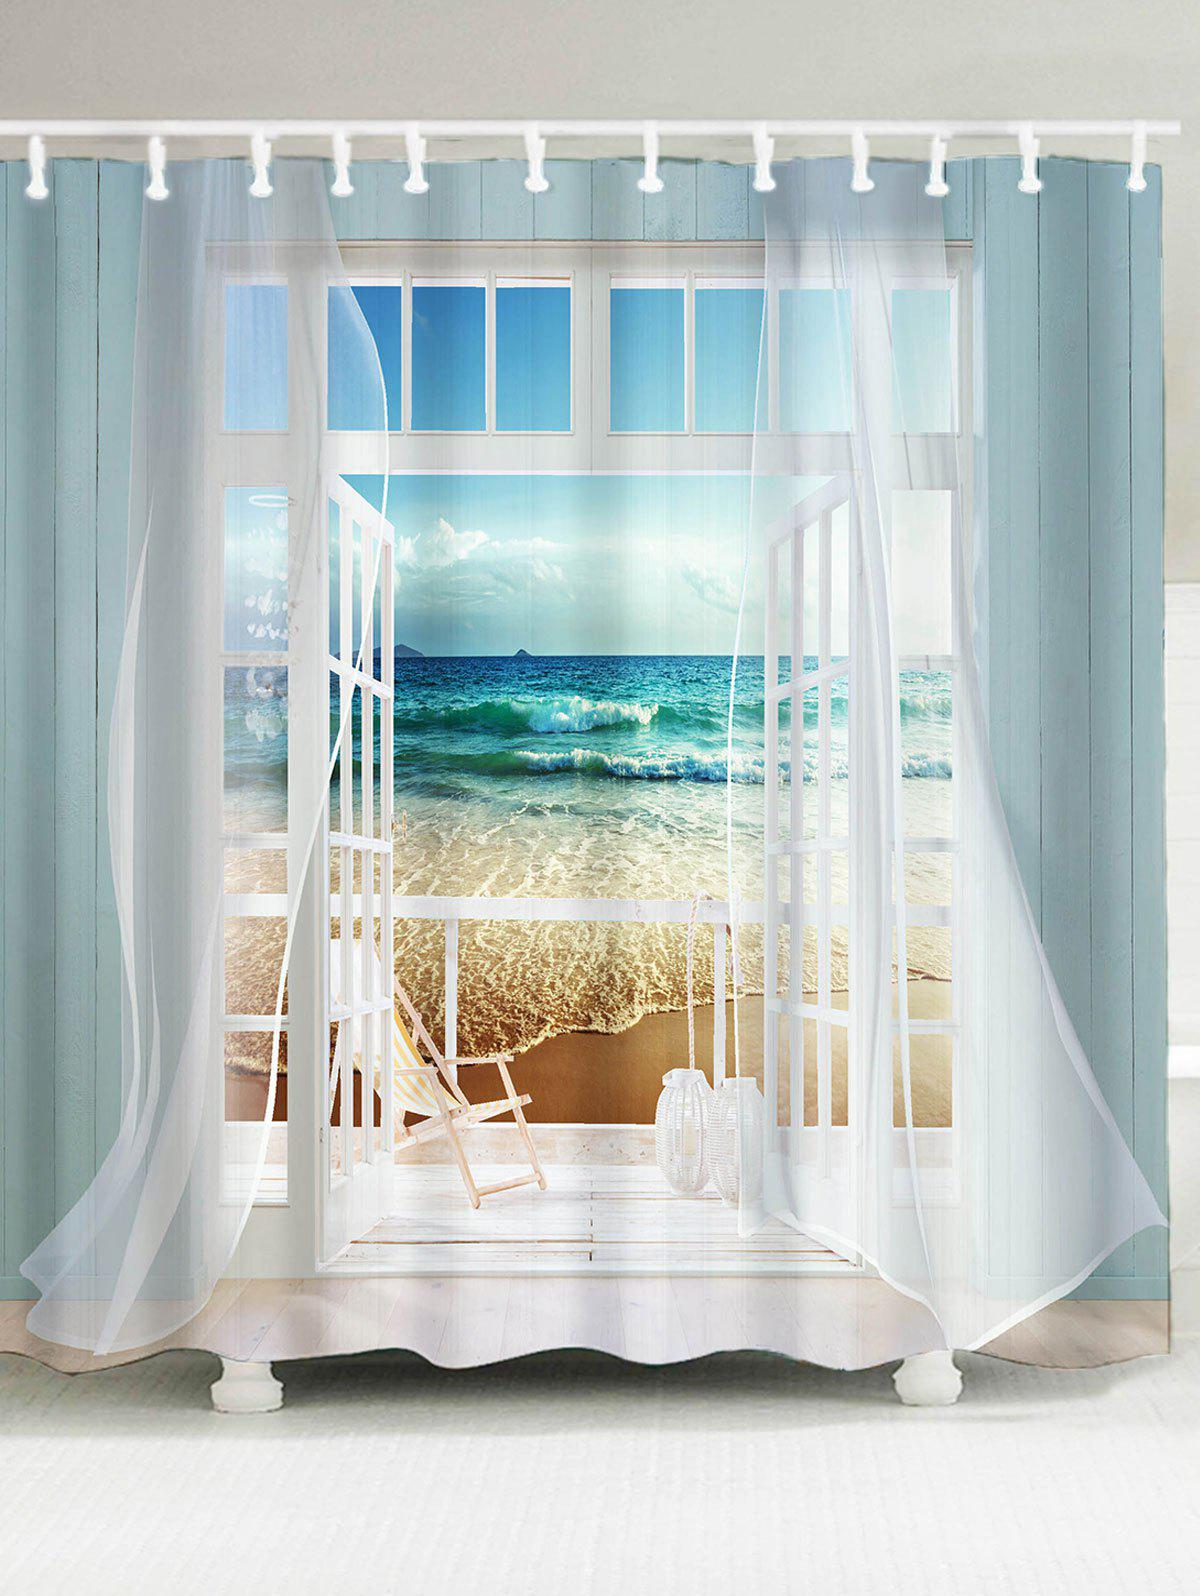 Waterproof Window Frame Ocean Scene Printing Shower CurtainHOME<br><br>Size: W71 INCH * L71 INCH; Color: COLORMIX; Products Type: Shower Curtains; Materials: Polyester; Pattern: Window; Style: Scenic; Number of Hook Holes: W59 inch*L71 inch: 10; W71 inch*L71 inch: 12; W79 inch*L71 inch: 12; Package Contents: 1 x Shower Curtain 1 x Hooks (Set);